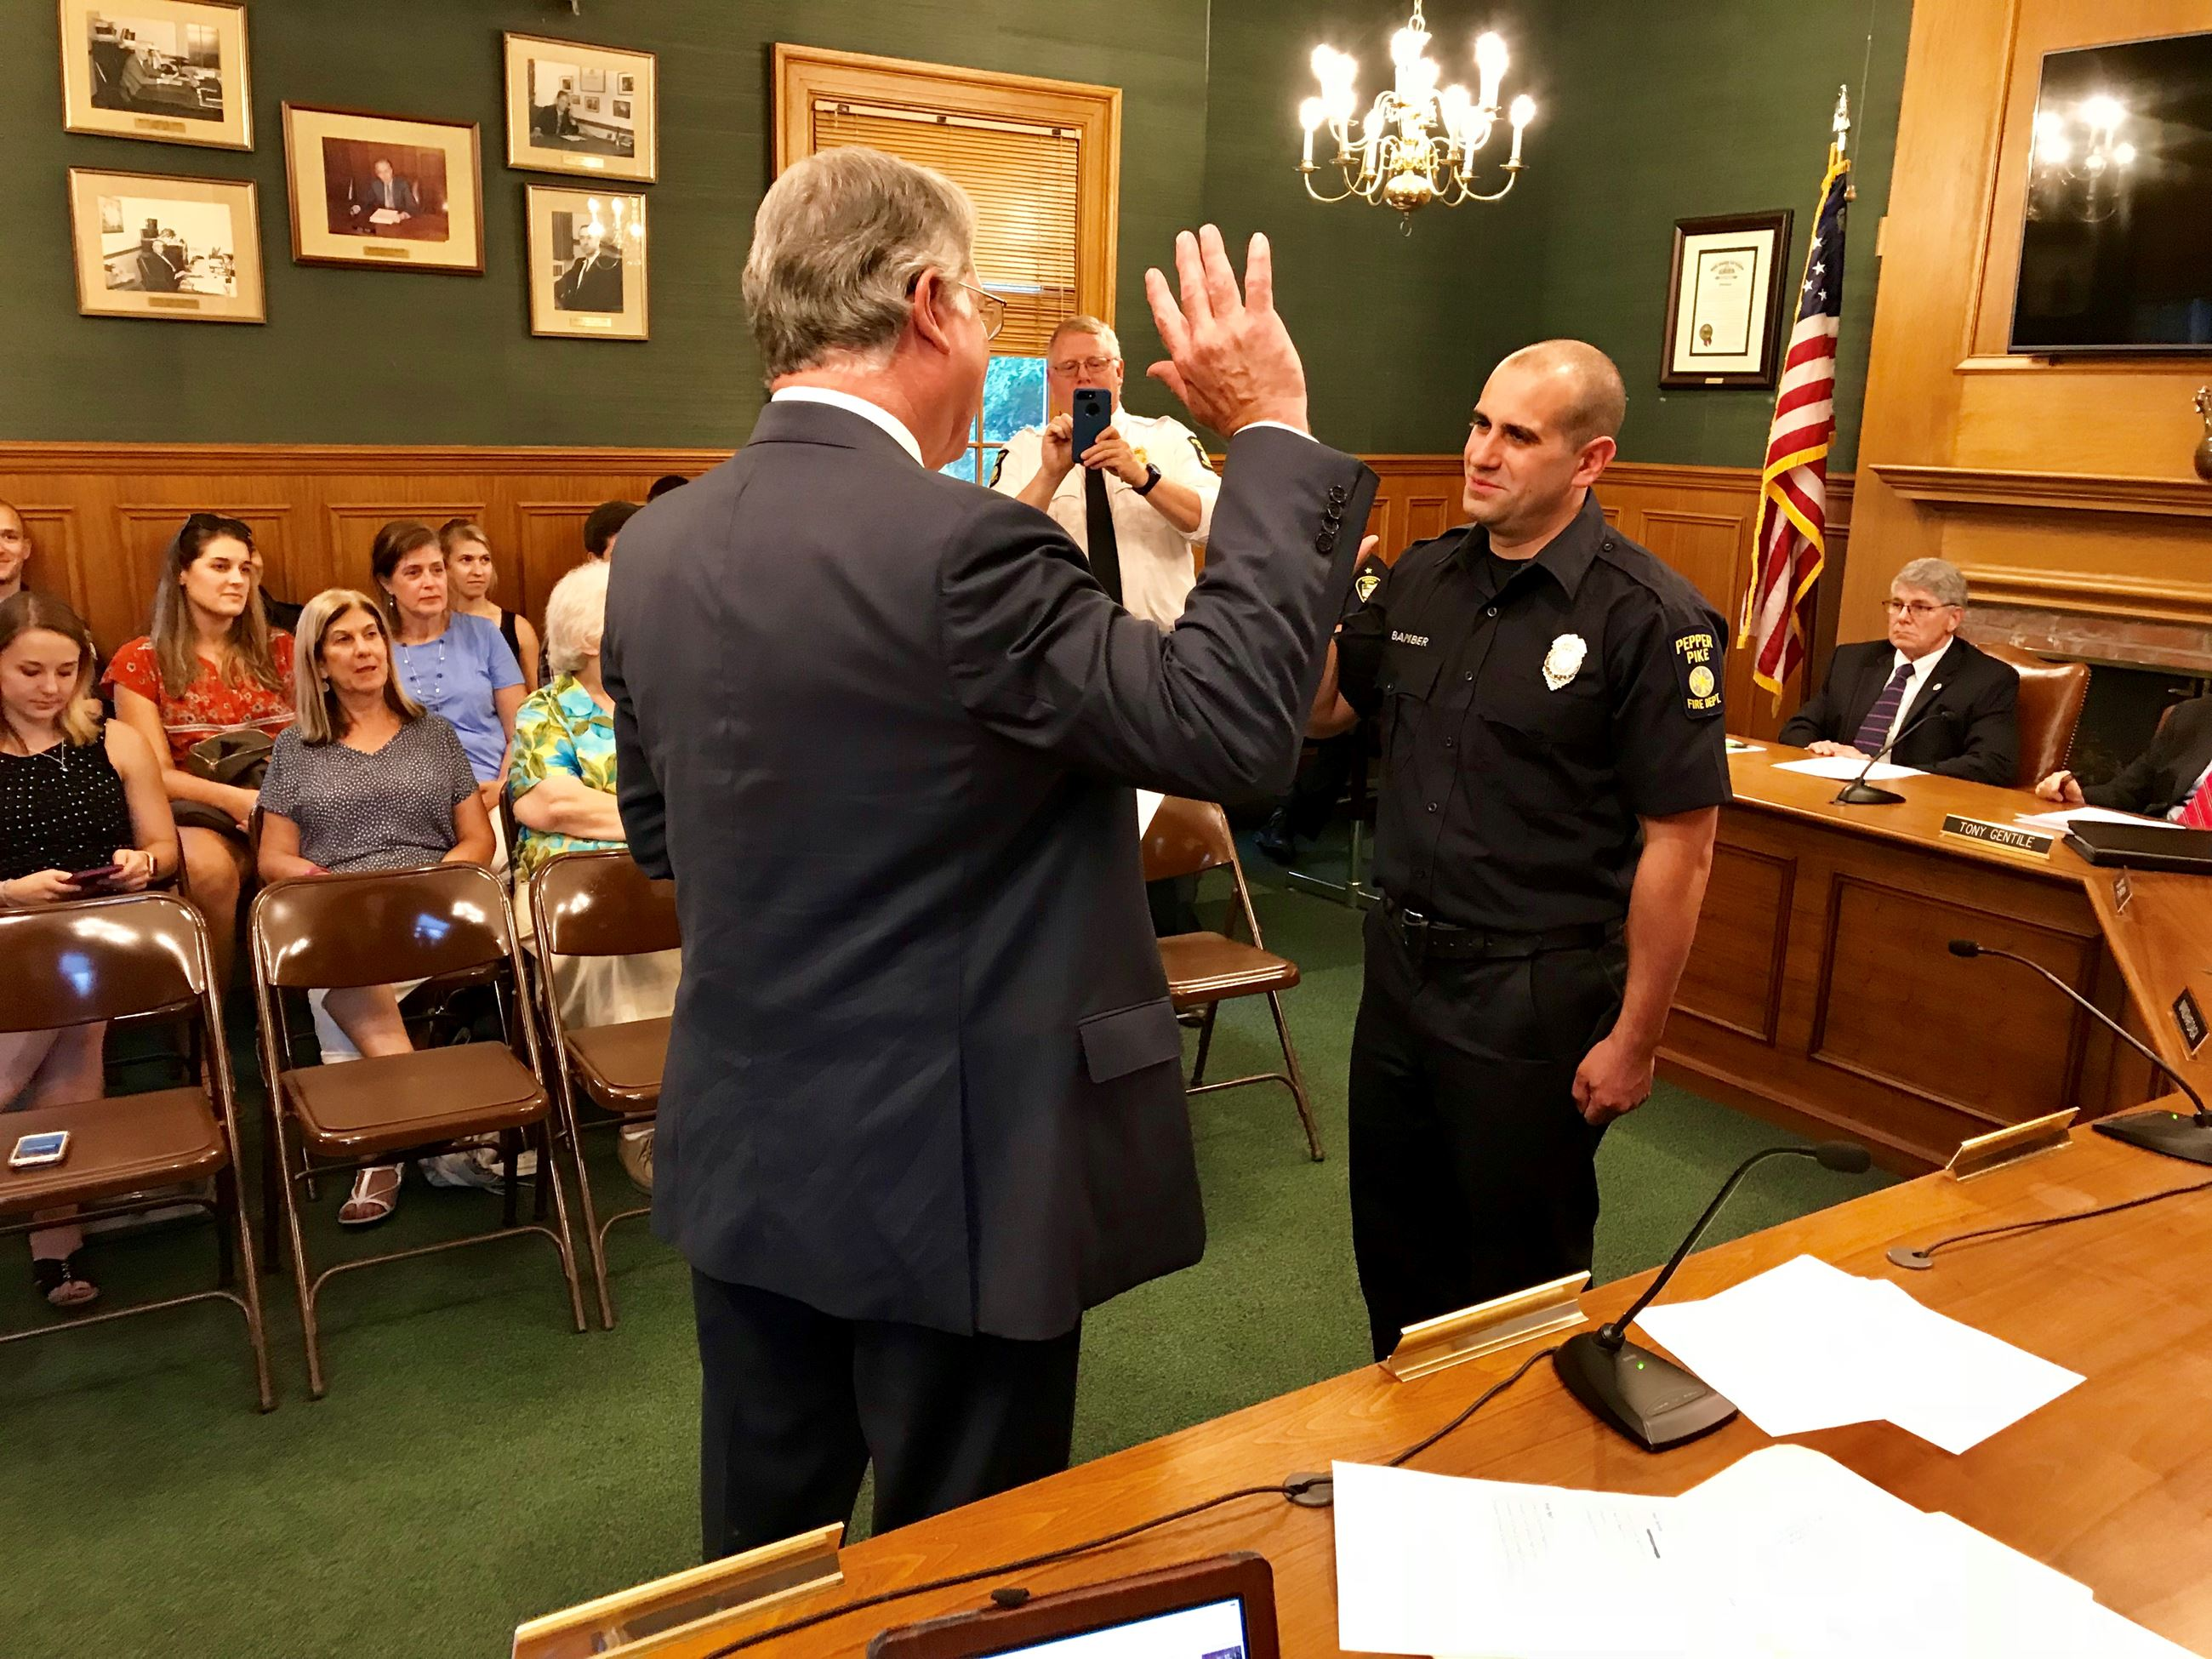 Bamber Swearing-In